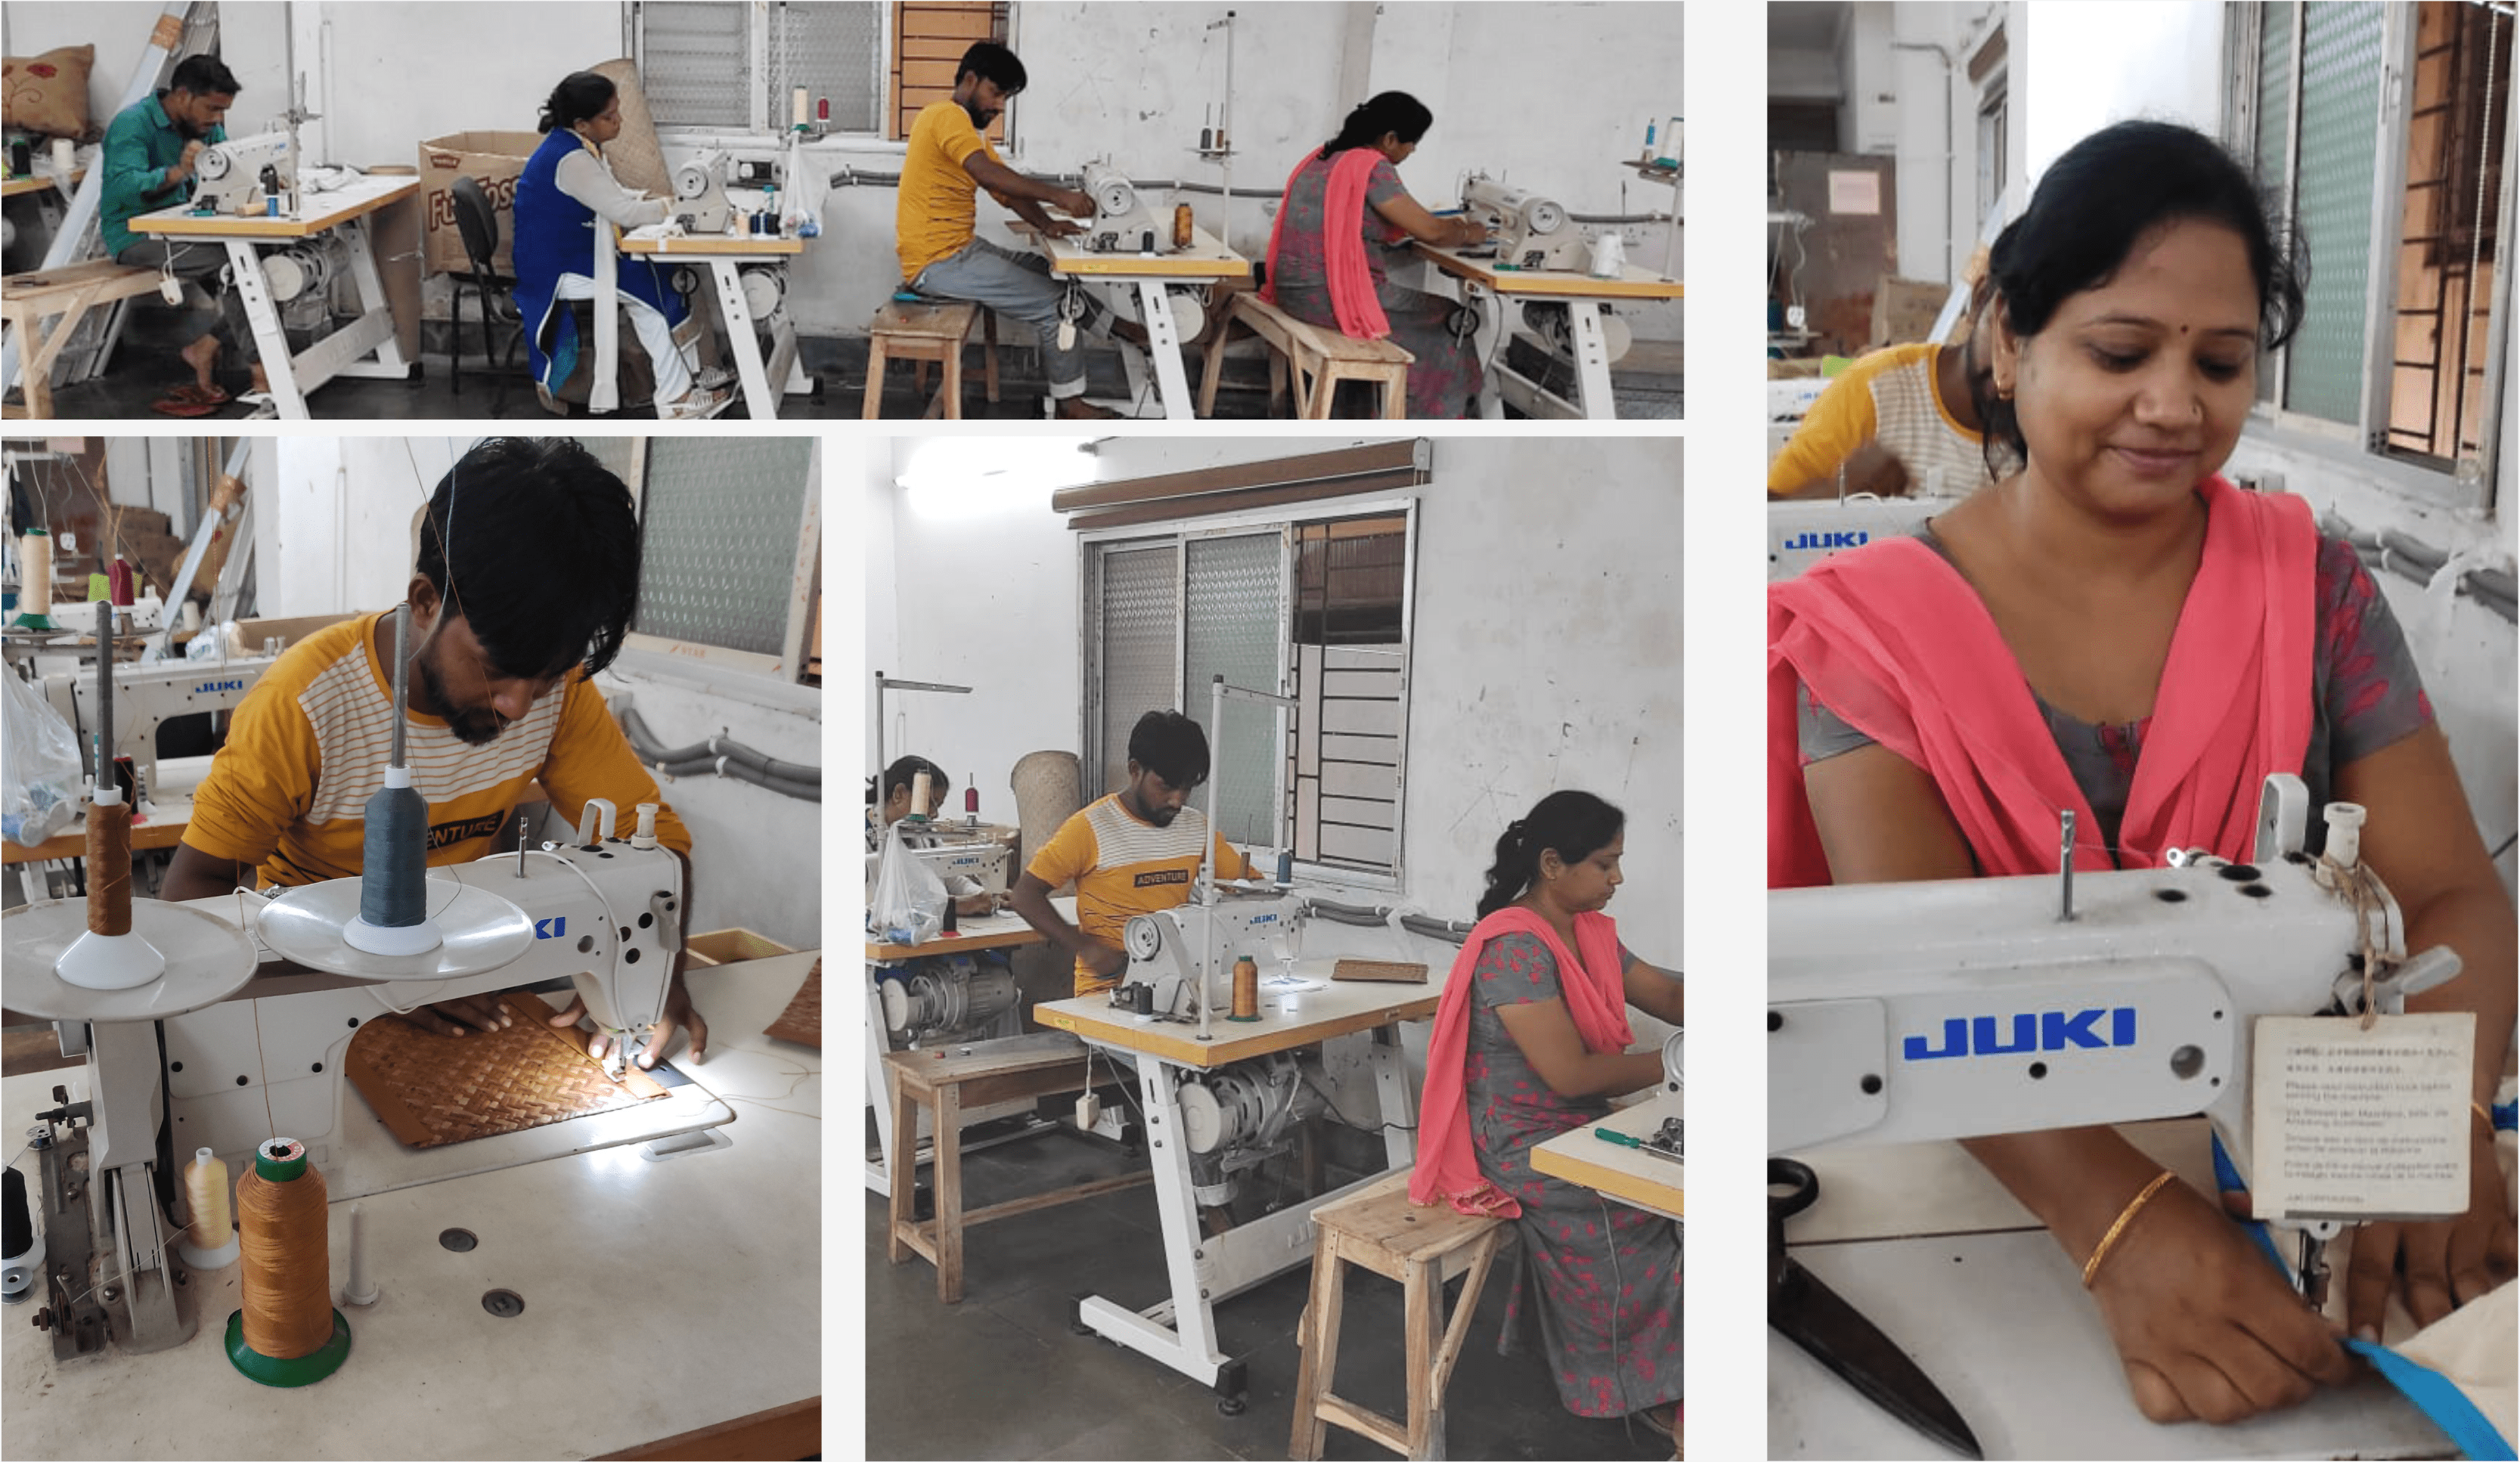 Local production of bags in India. Source: Xander bags